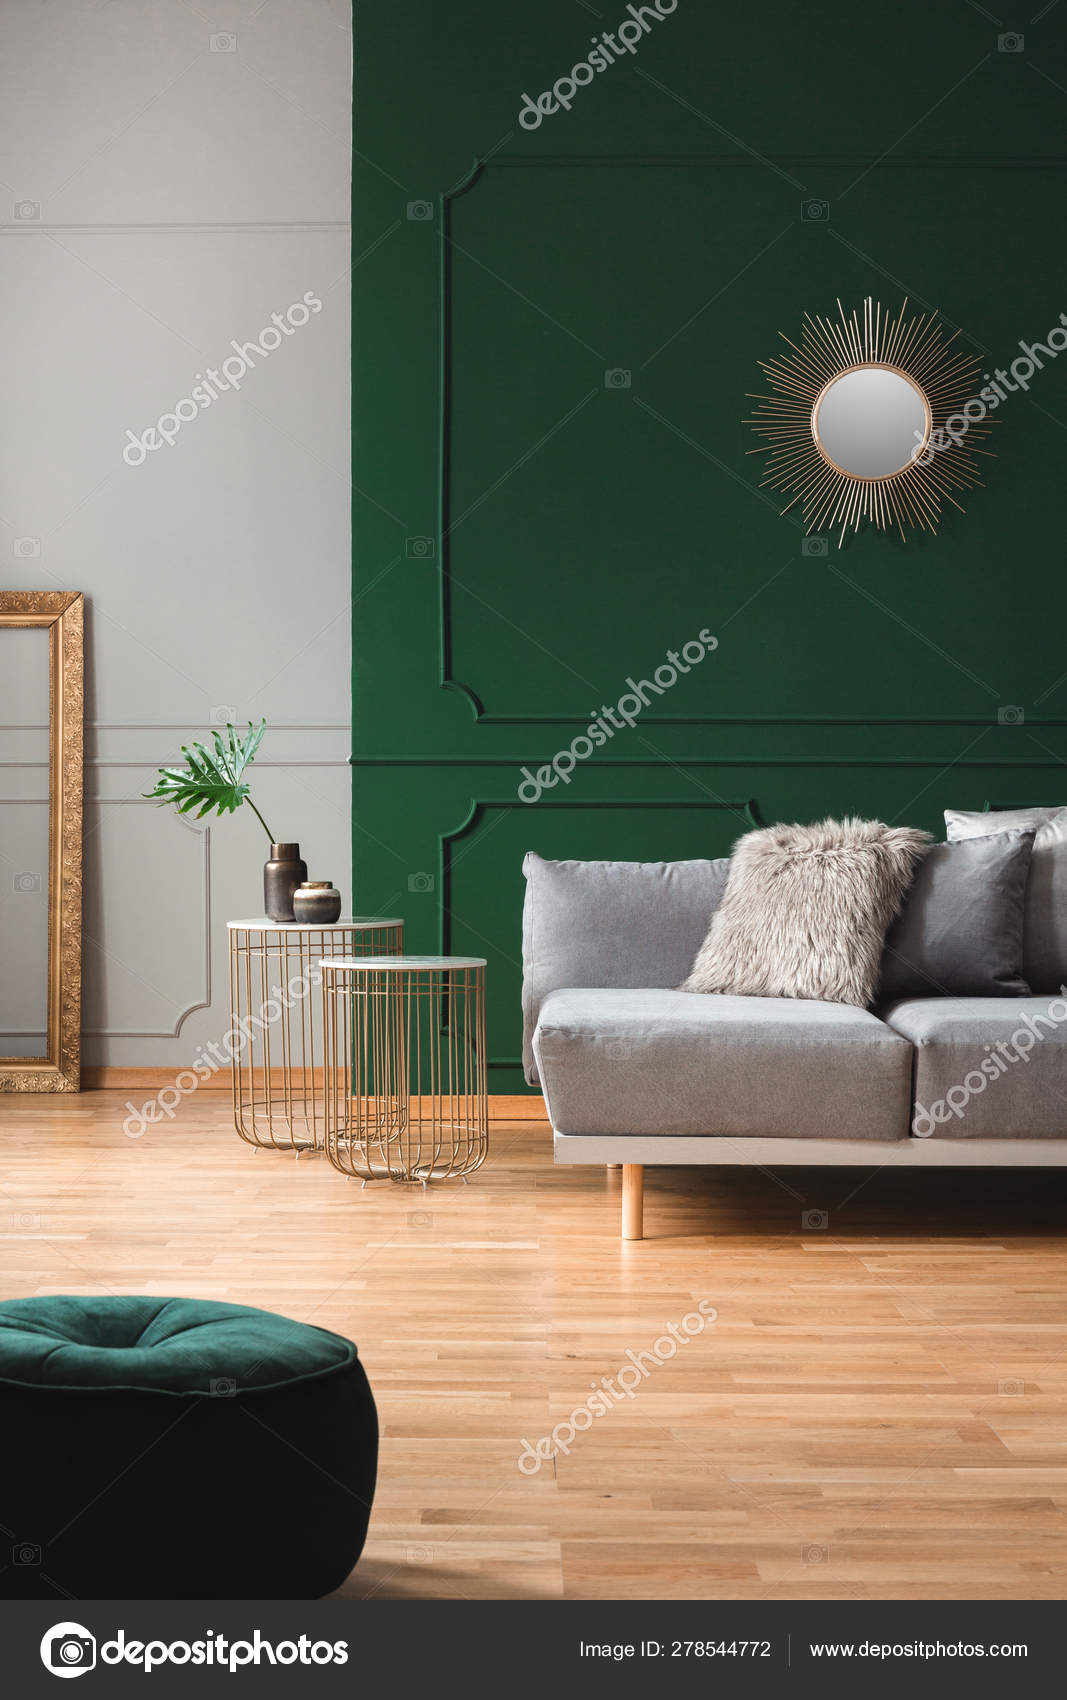 Groovy Emerald Green Living Room Interior With Grey And Golden Gmtry Best Dining Table And Chair Ideas Images Gmtryco